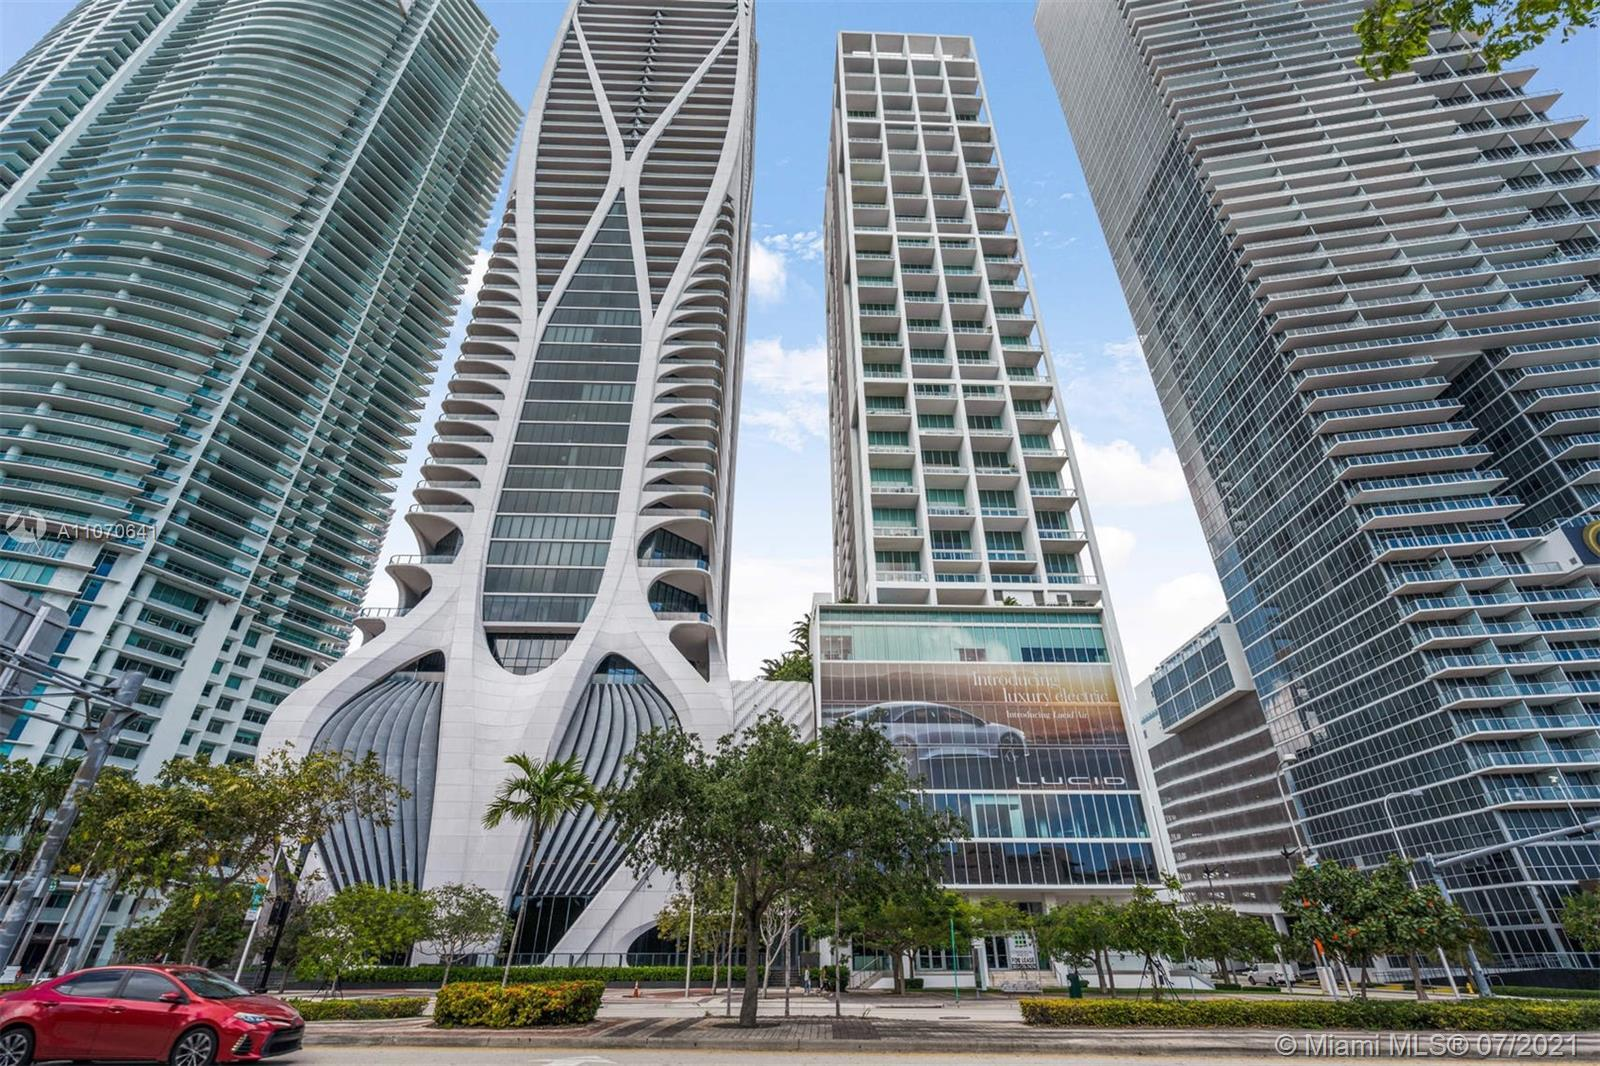 Luxury condominium in Downtown Miami with spectacular sunset views and vibrant city life. This sleek